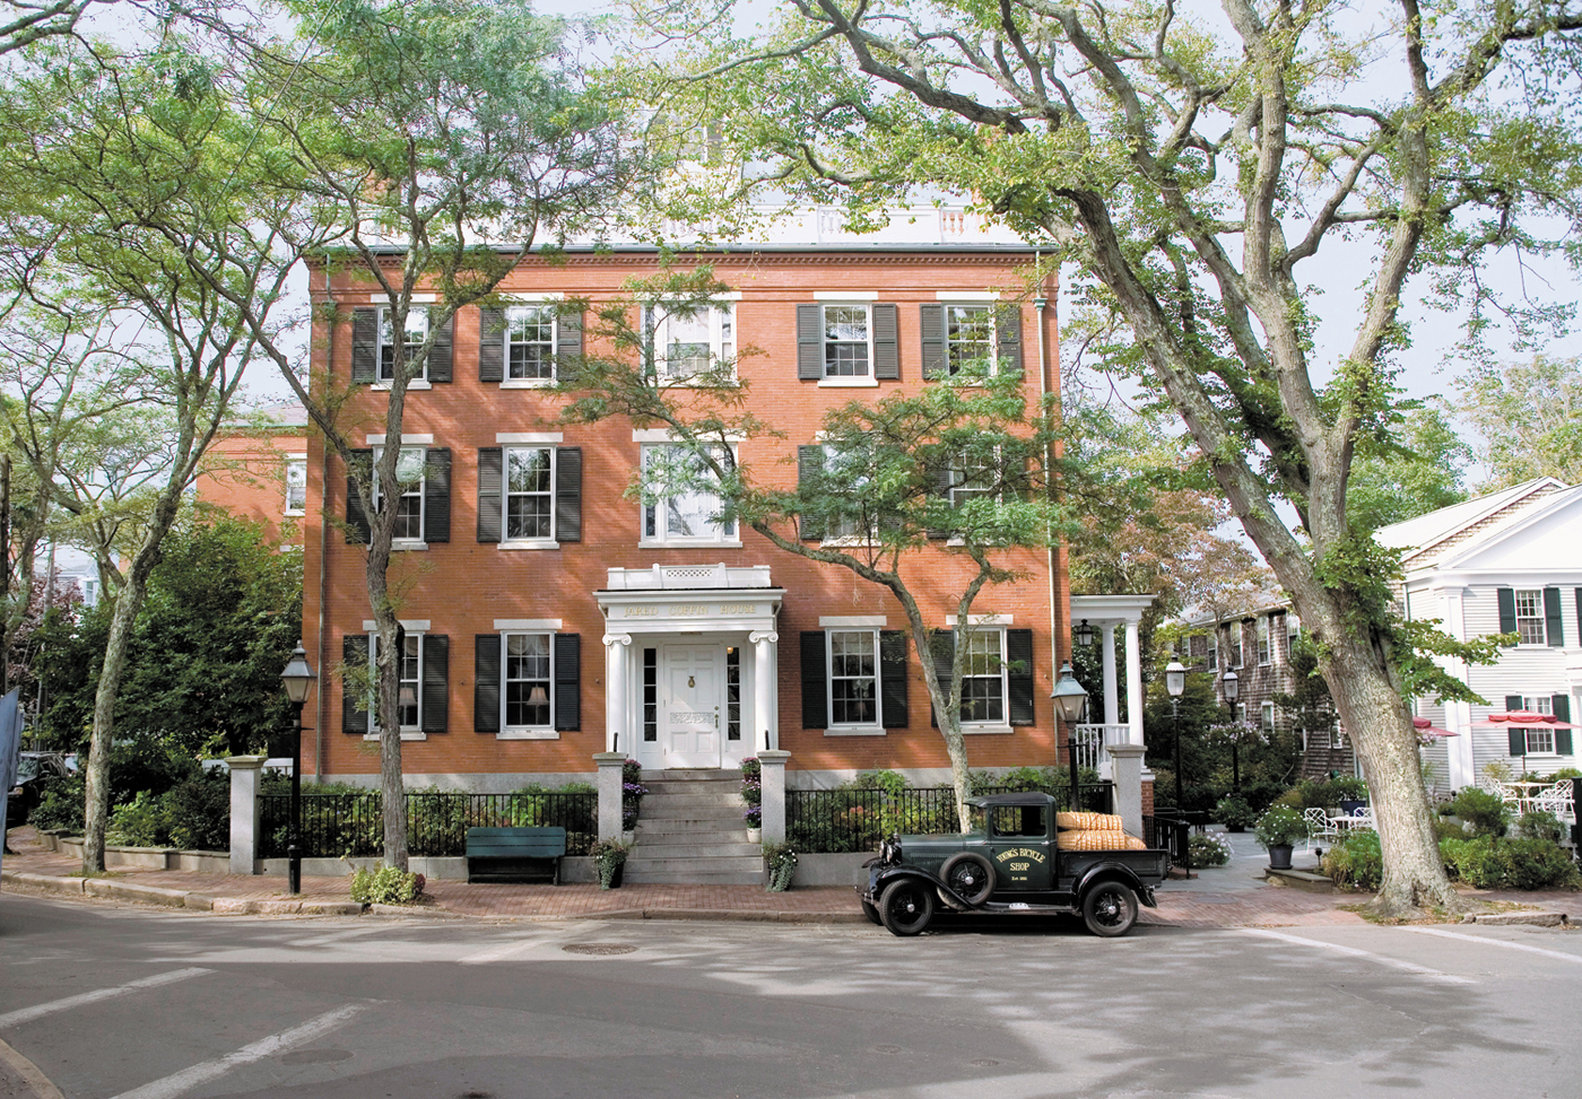 Jared Coffin House